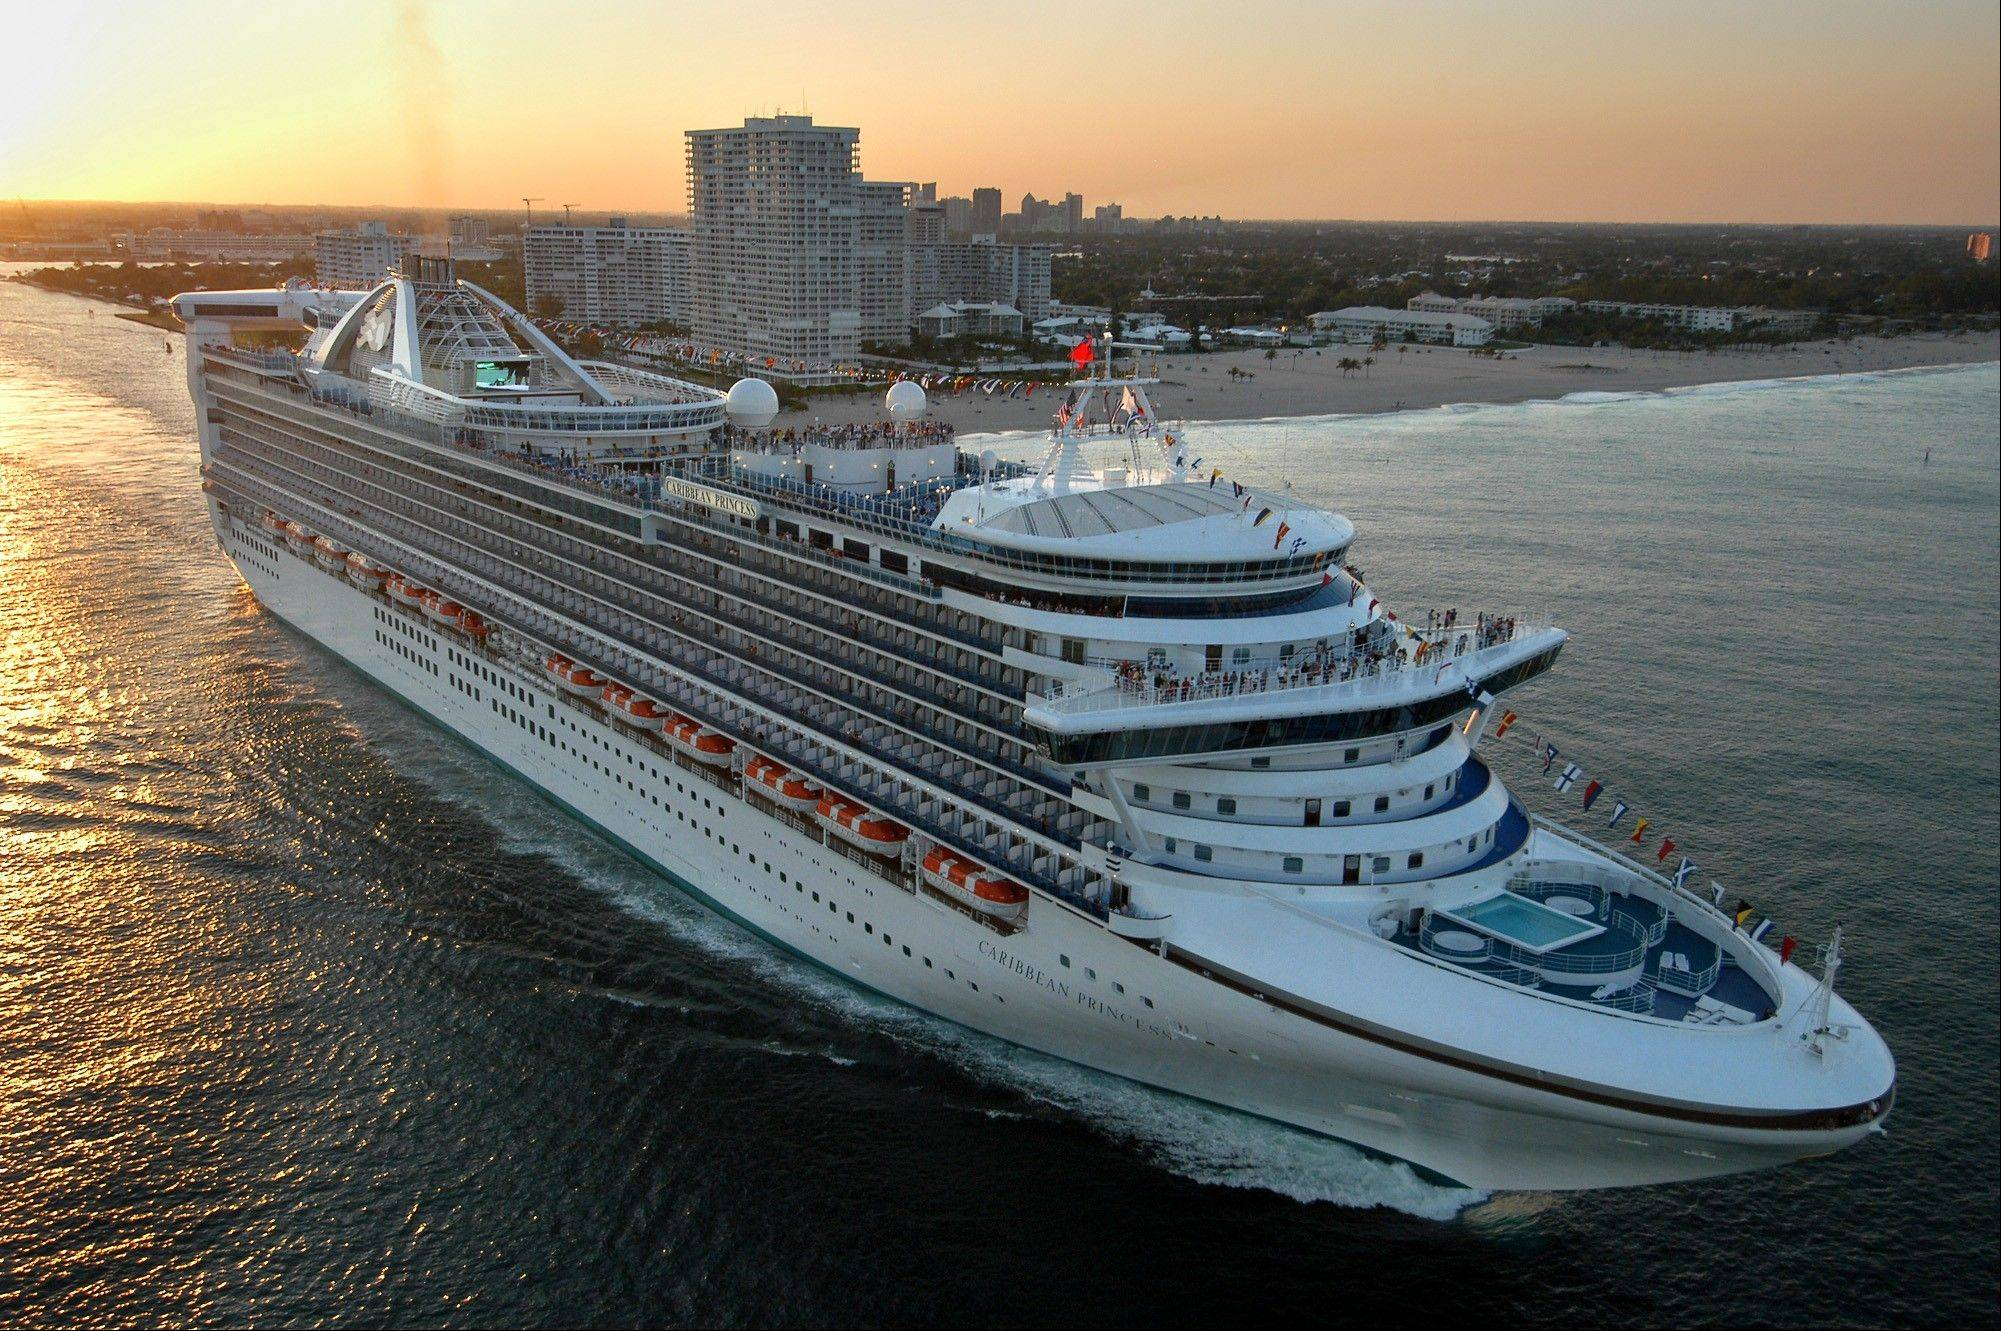 Cruise ship returns to Texas with 170 sick aboard